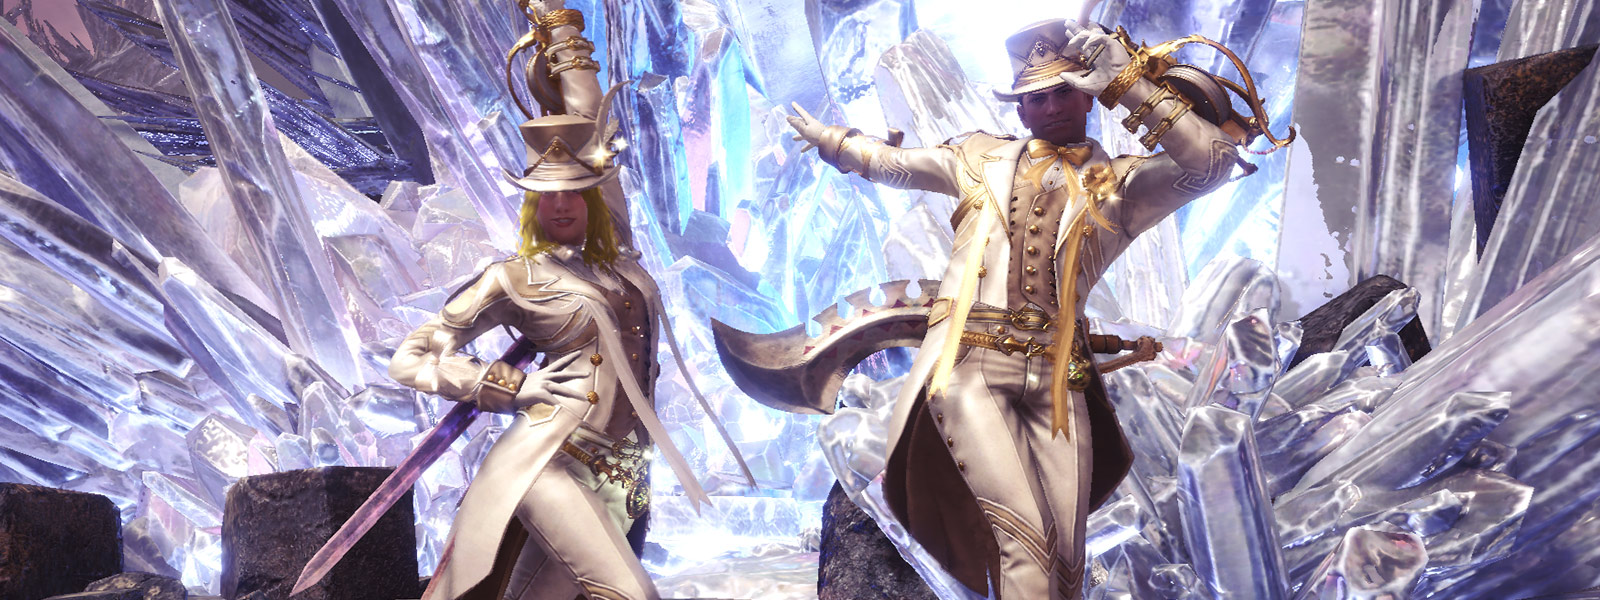 Male and female character pose in elegant outfits